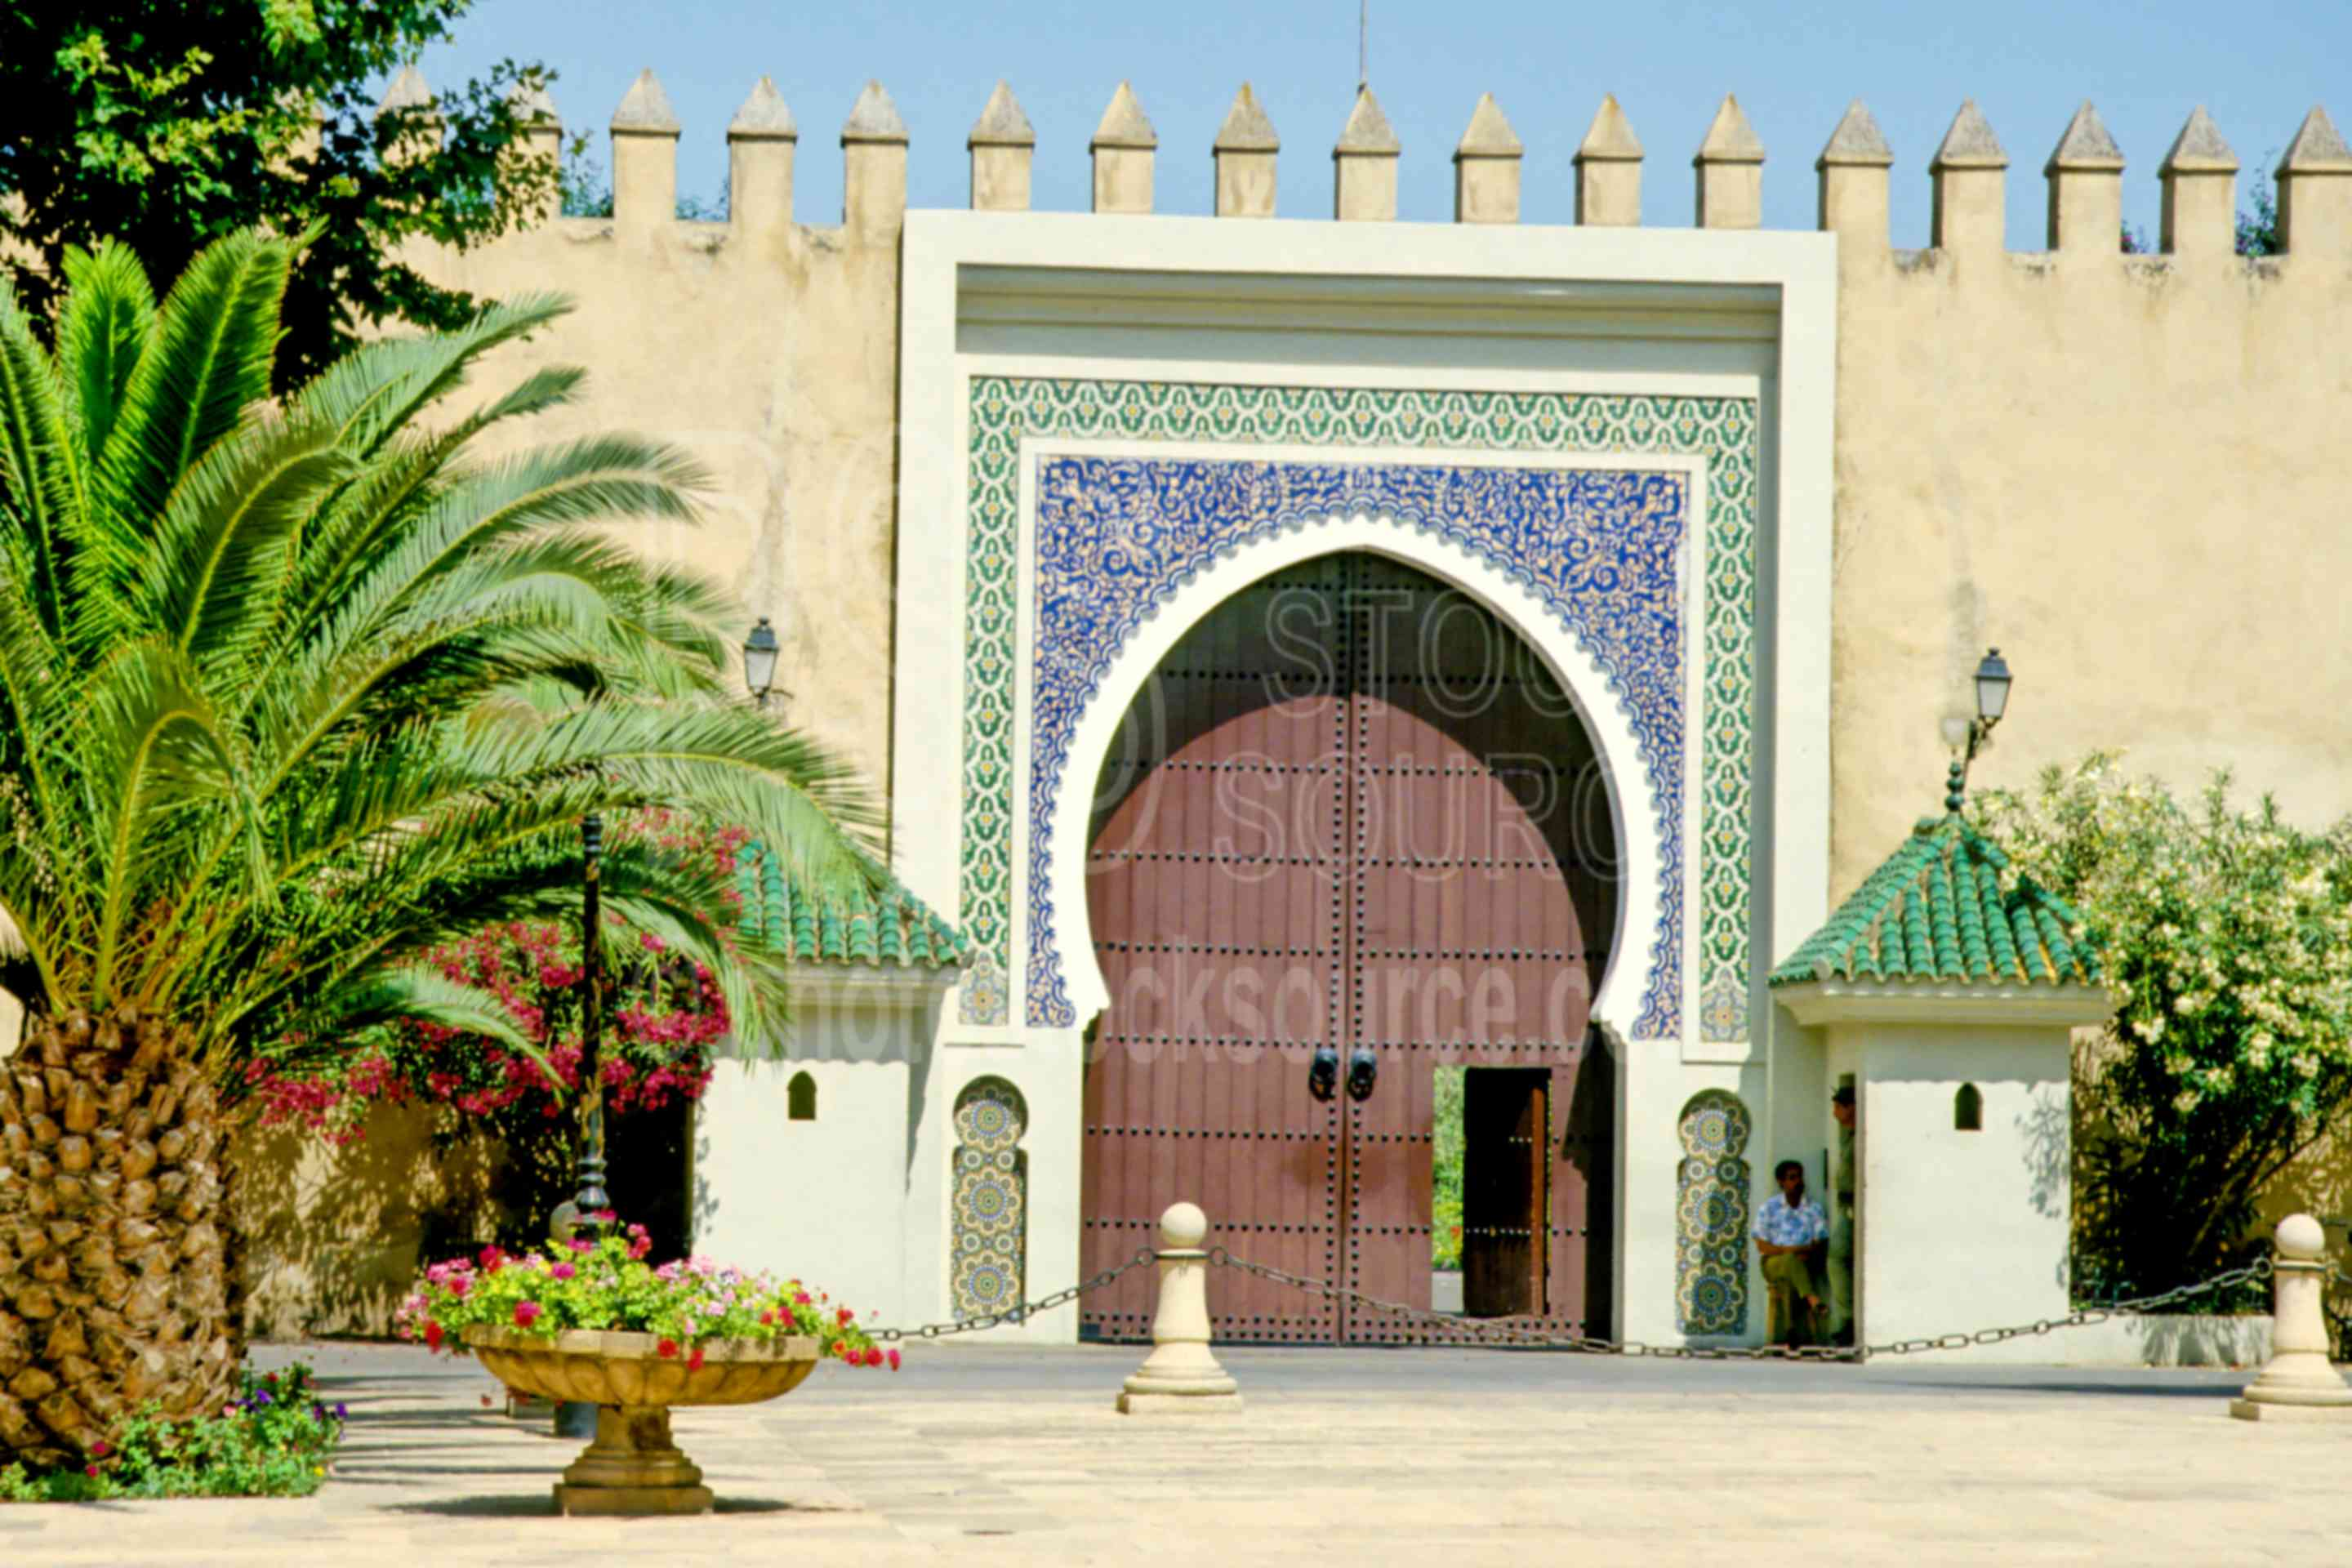 Royal Palace,door,fezs,gate,palace,morocco mosques